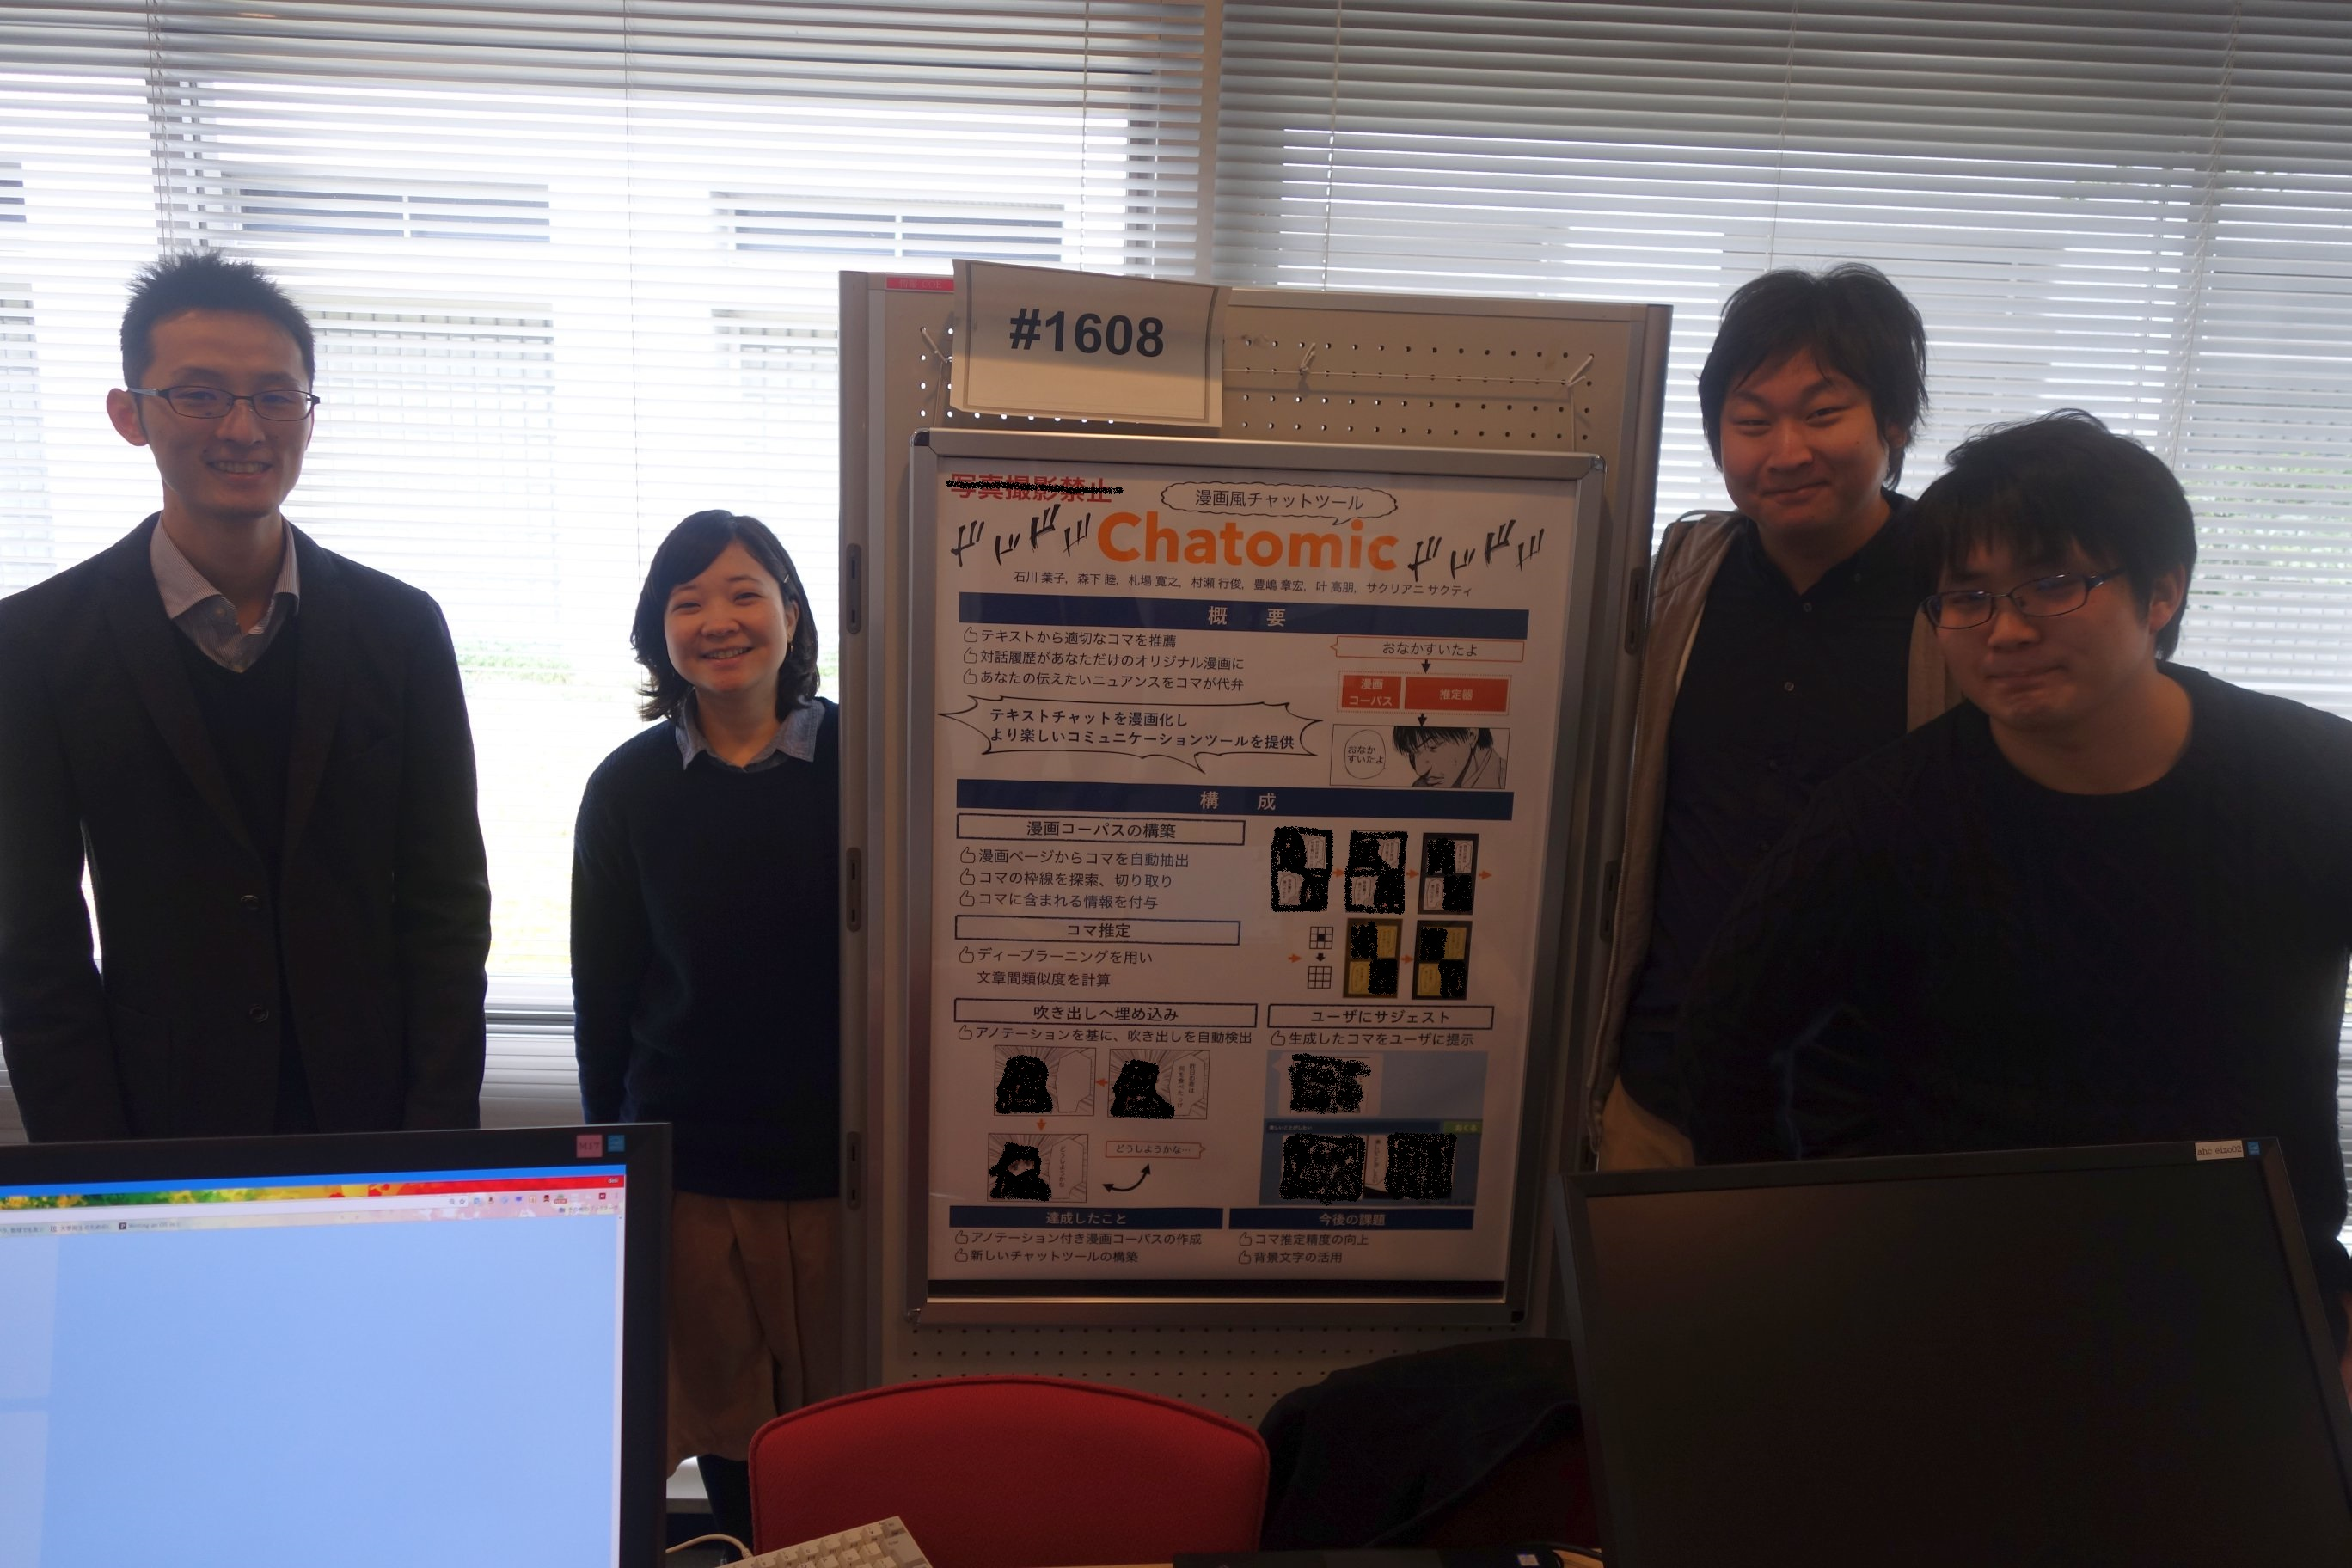 CICP 2016 Excellent Research Project Award: Chatomic.